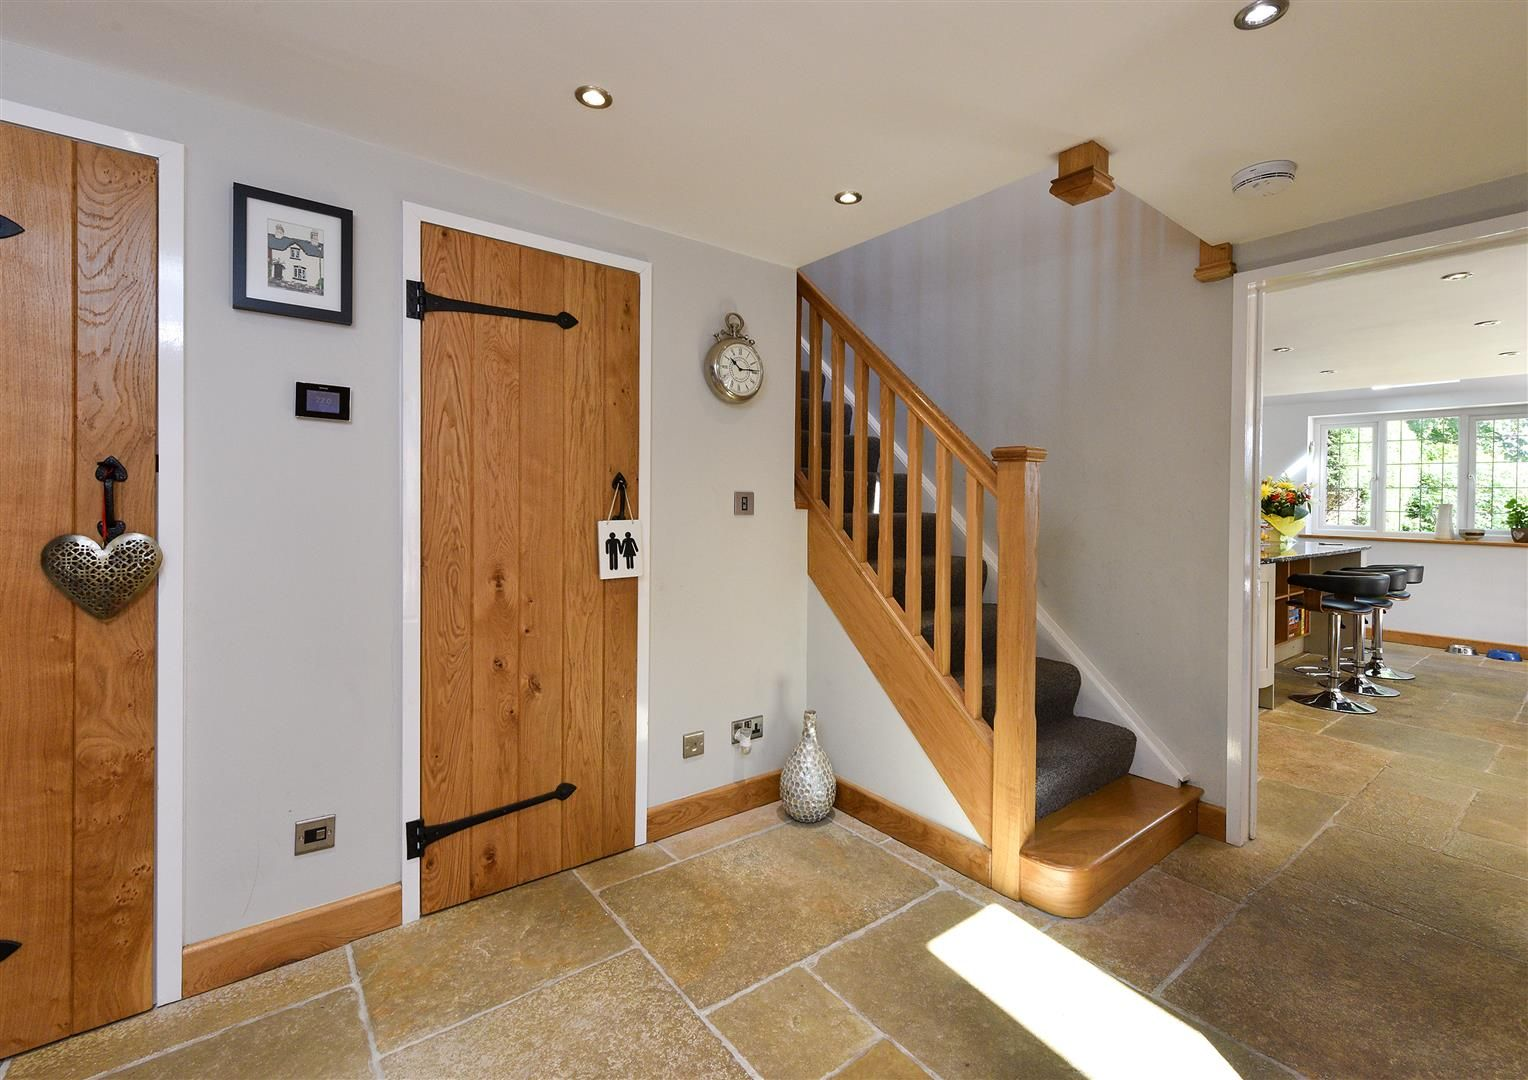 4 bed house for sale in Belbroughton  - Property Image 6